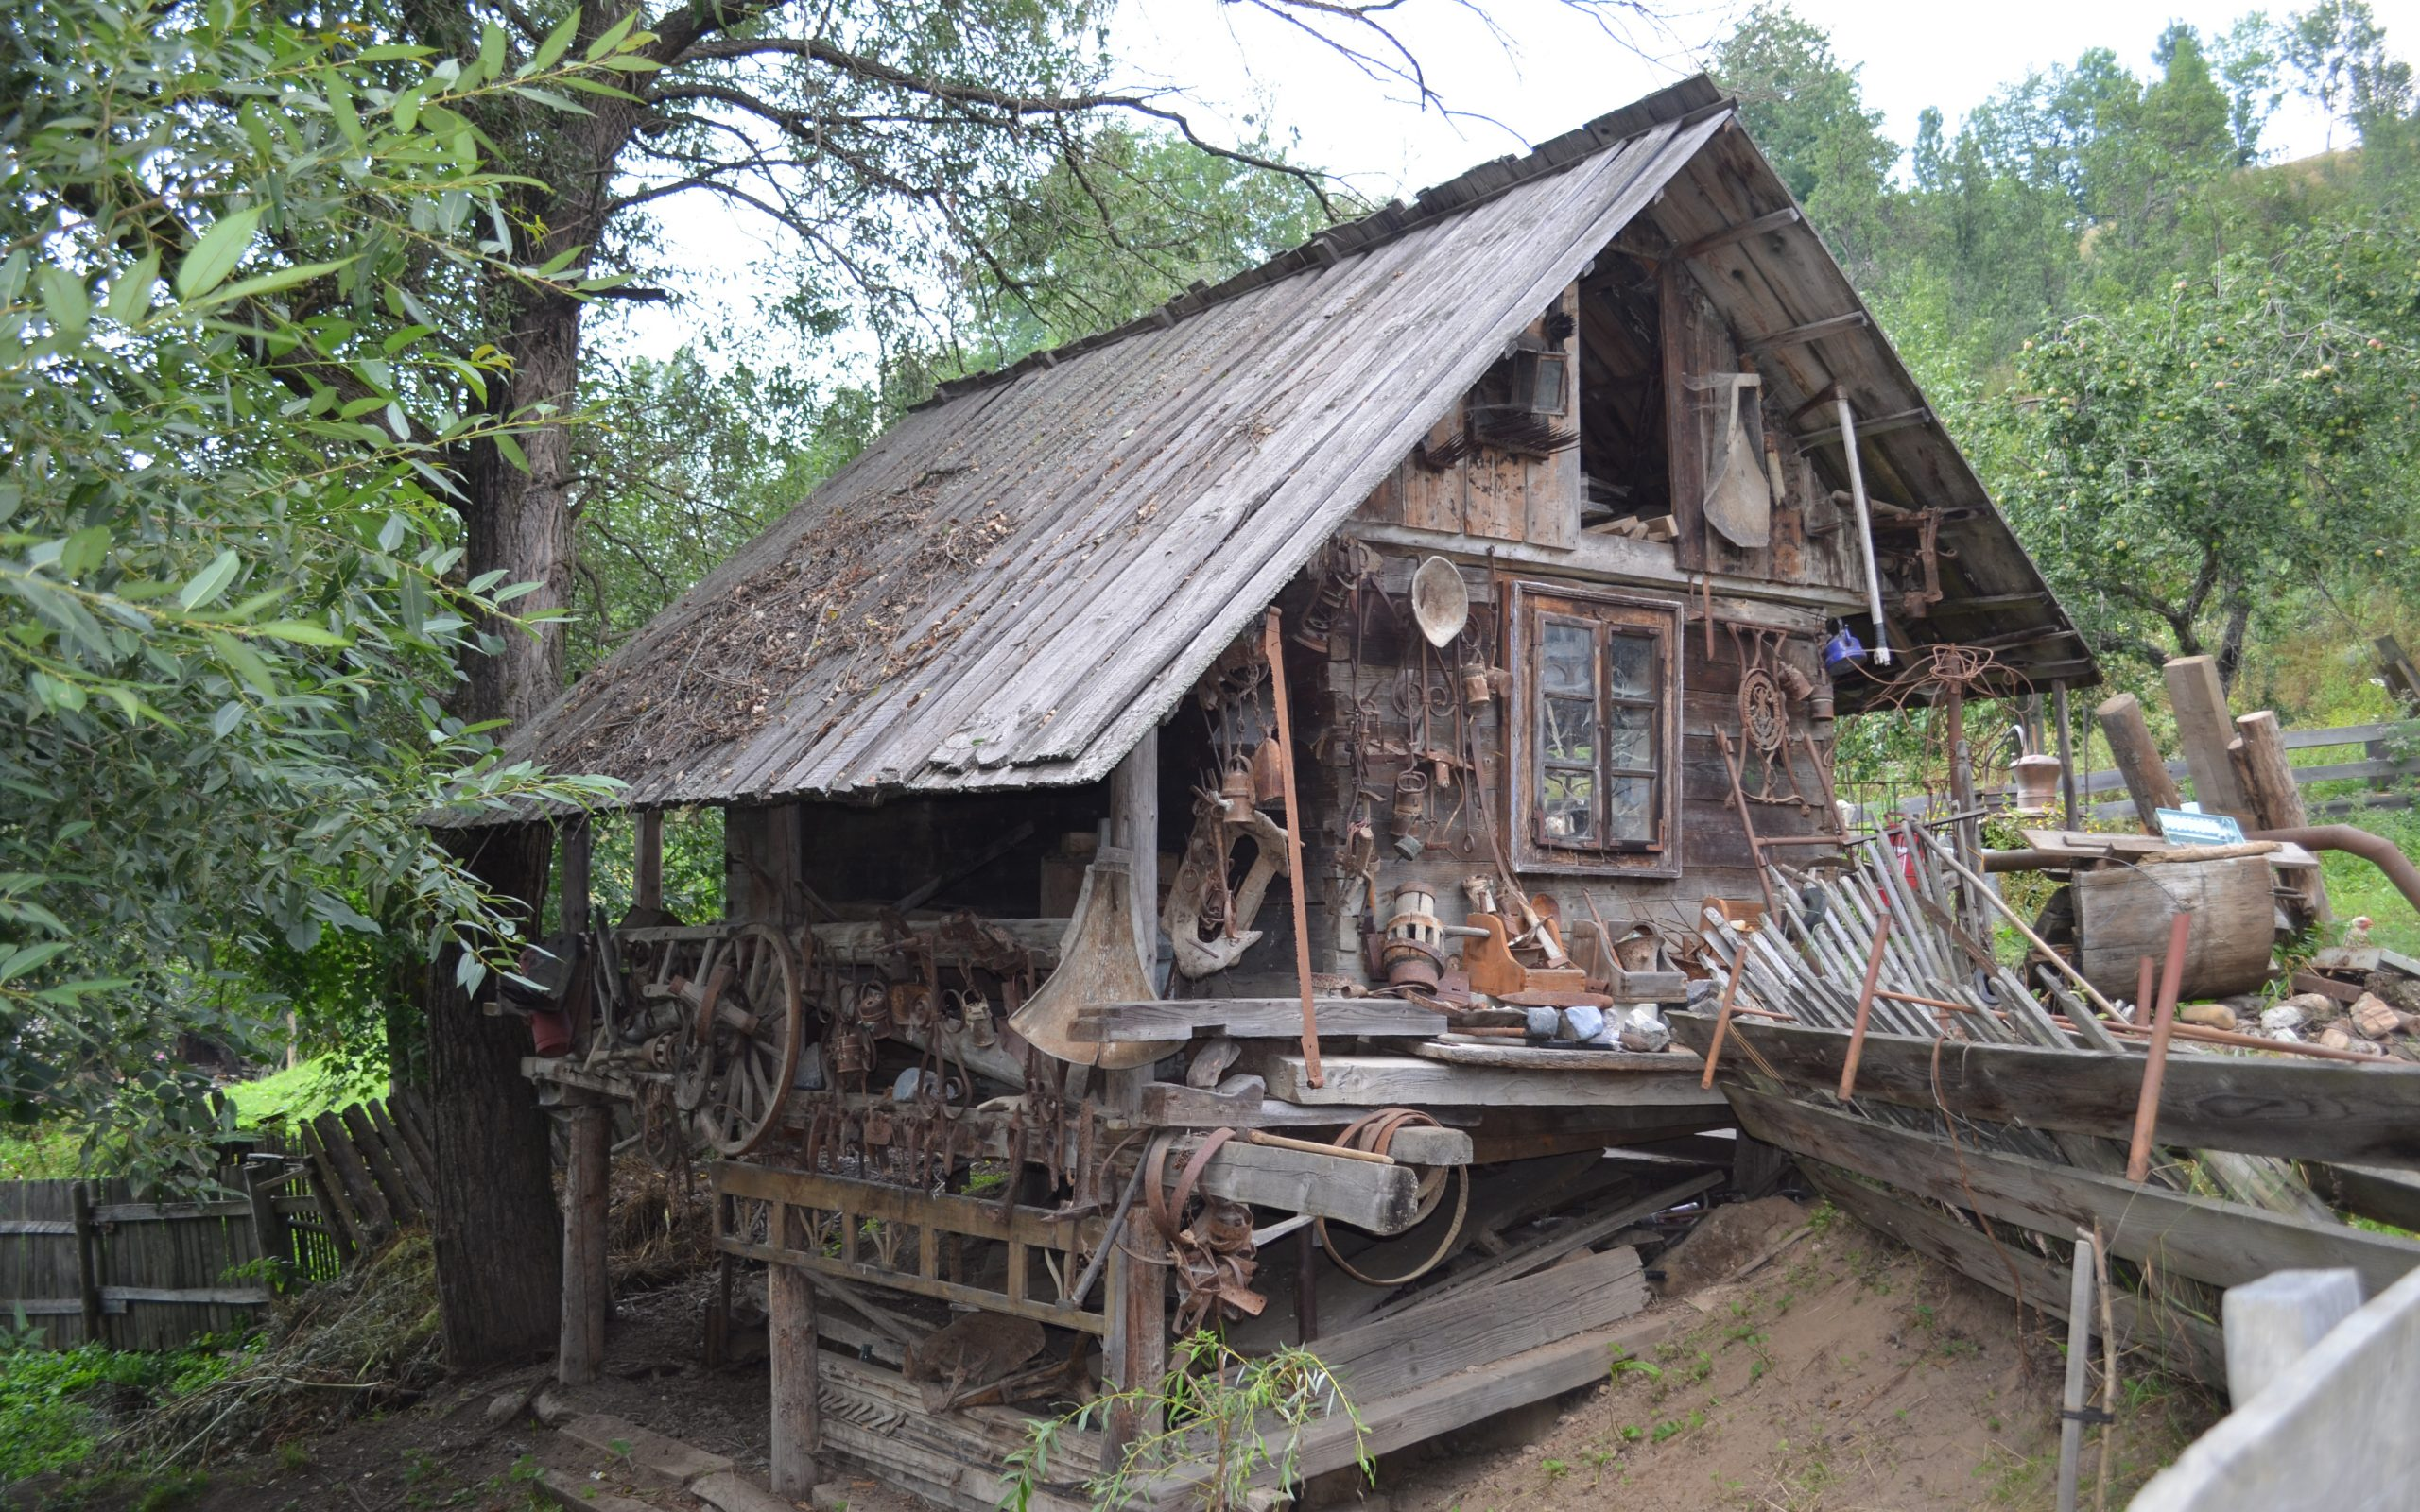 An old wooden building covered in mining tools.